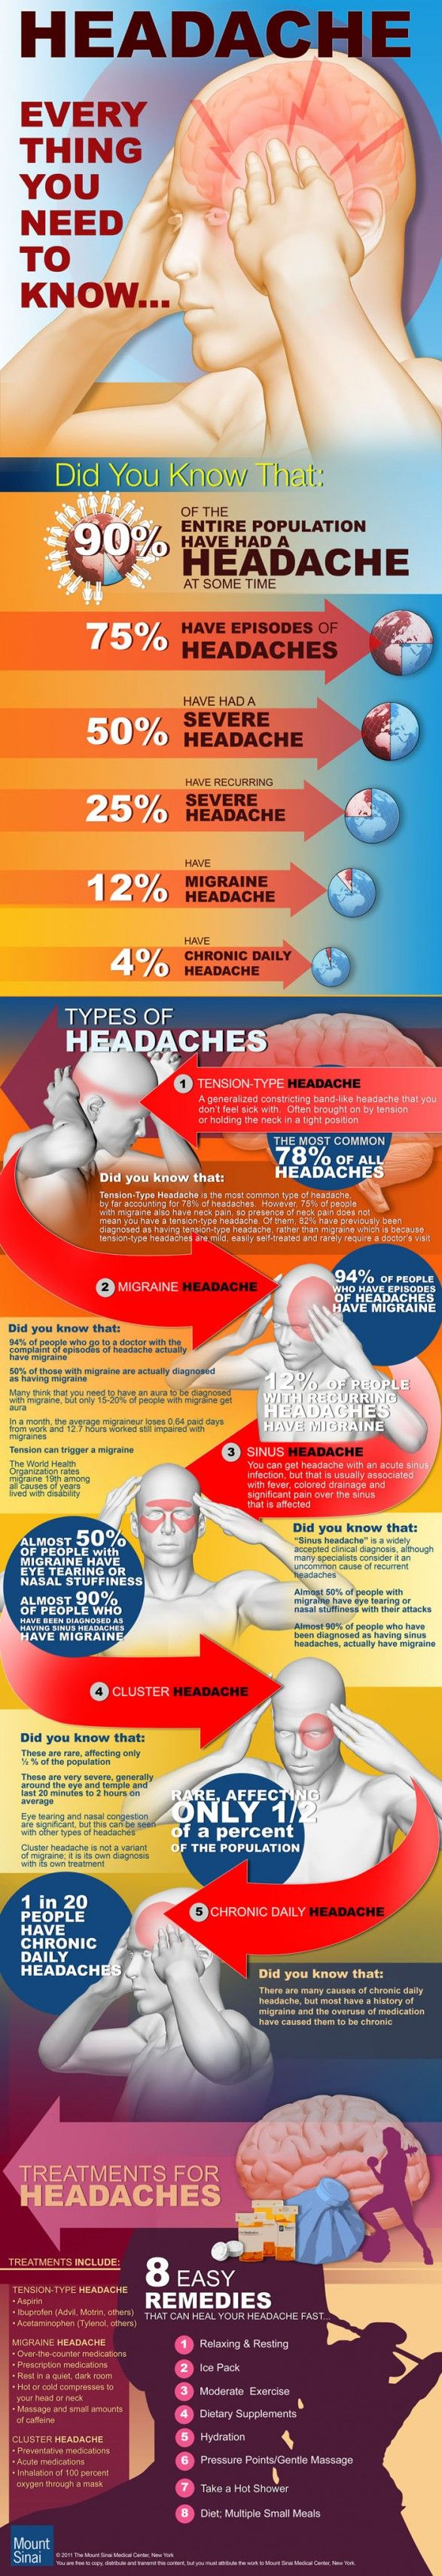 Migraine improvements cure.Know more about Migraines and the cure for that.